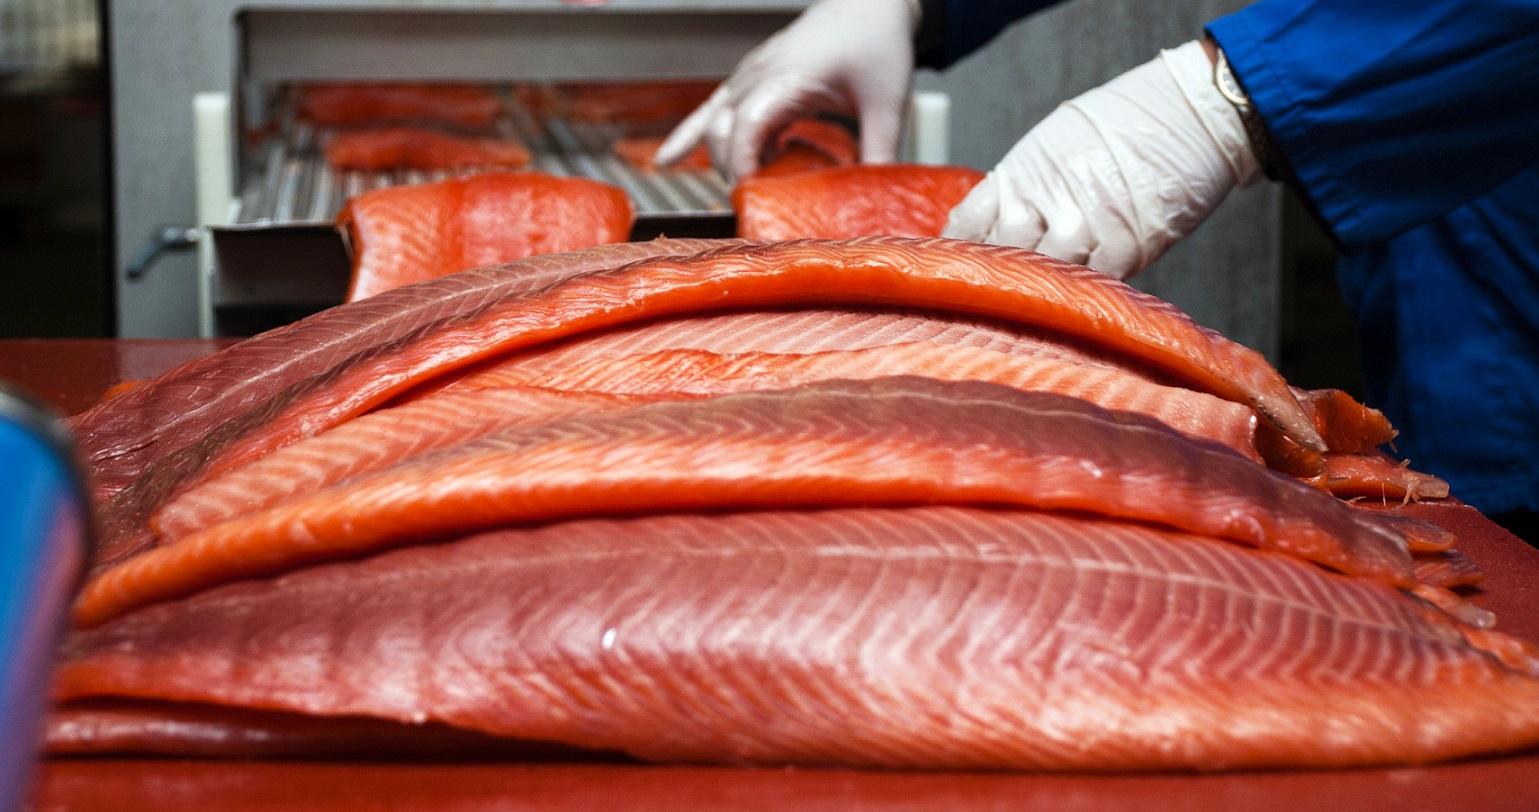 Research Note: Phage protects smoked salmon against naturally present Listeria monocytogenes